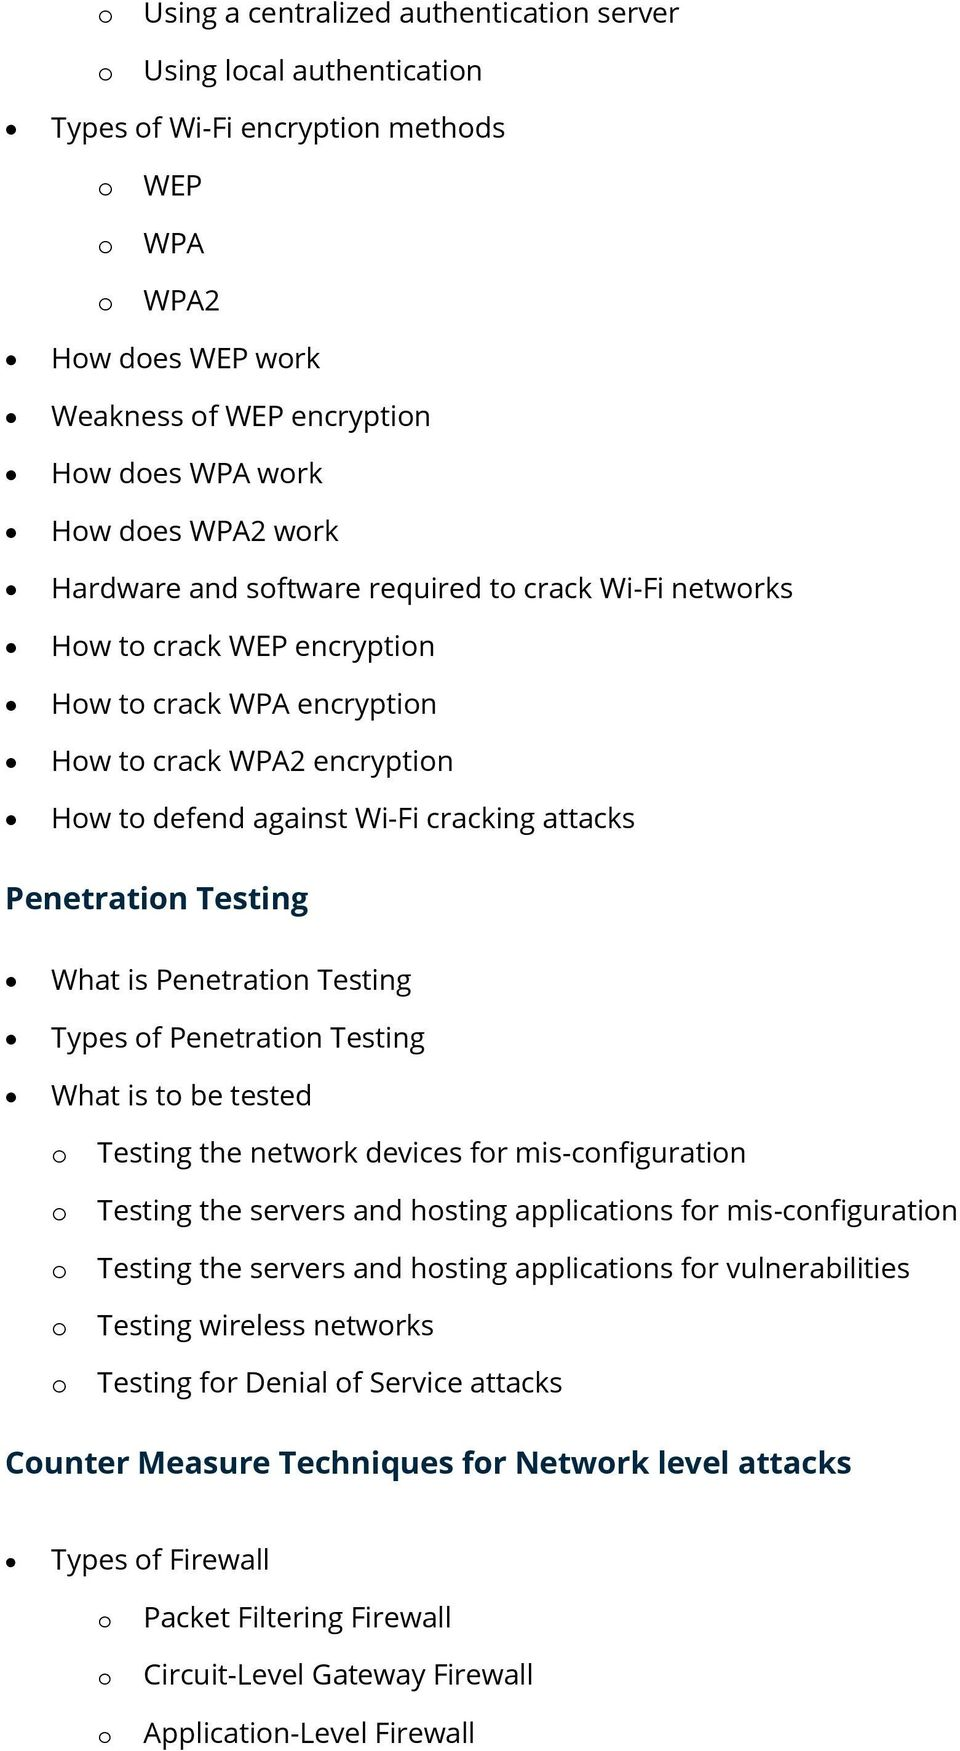 Testing Types f Penetratin Testing What is t be tested Testing the netwrk devices fr mis-cnfiguratin Testing the servers and hsting applicatins fr mis-cnfiguratin Testing the servers and hsting